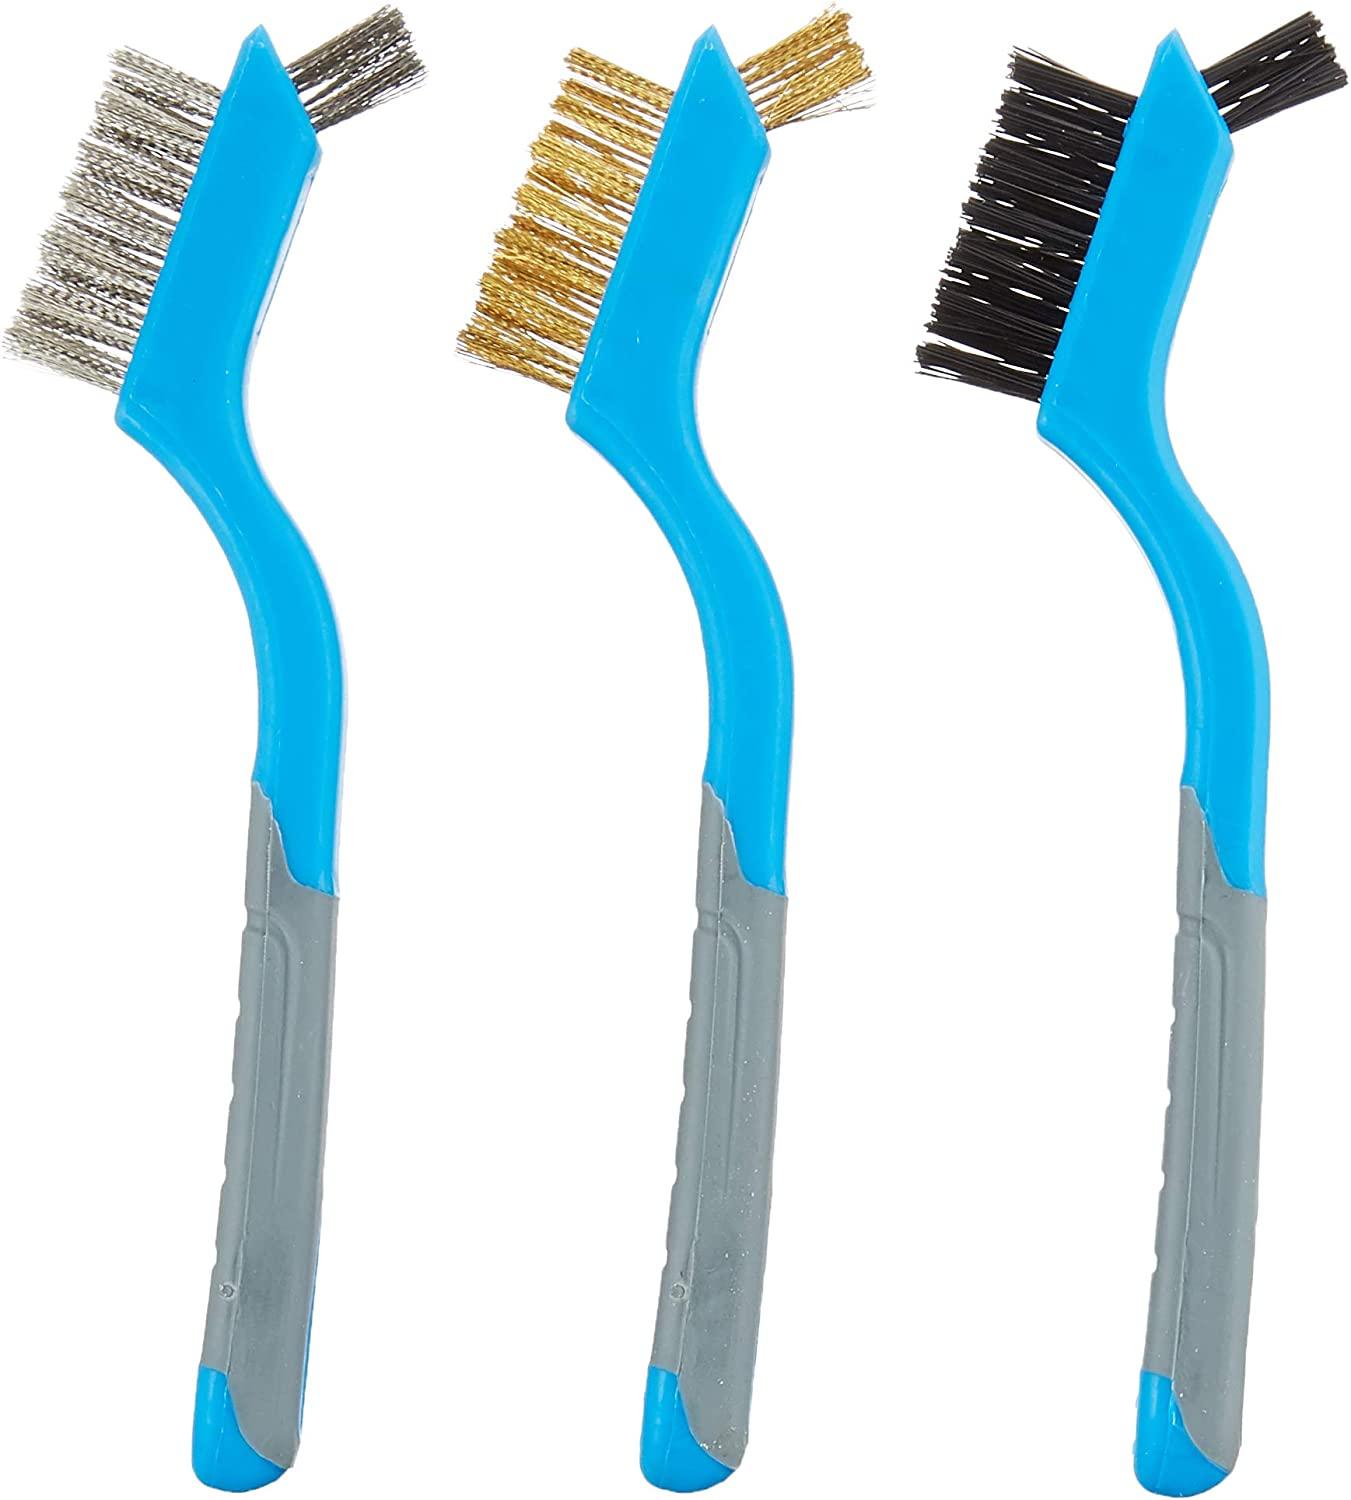 Roughneck Mini Wire Brush Set of 3